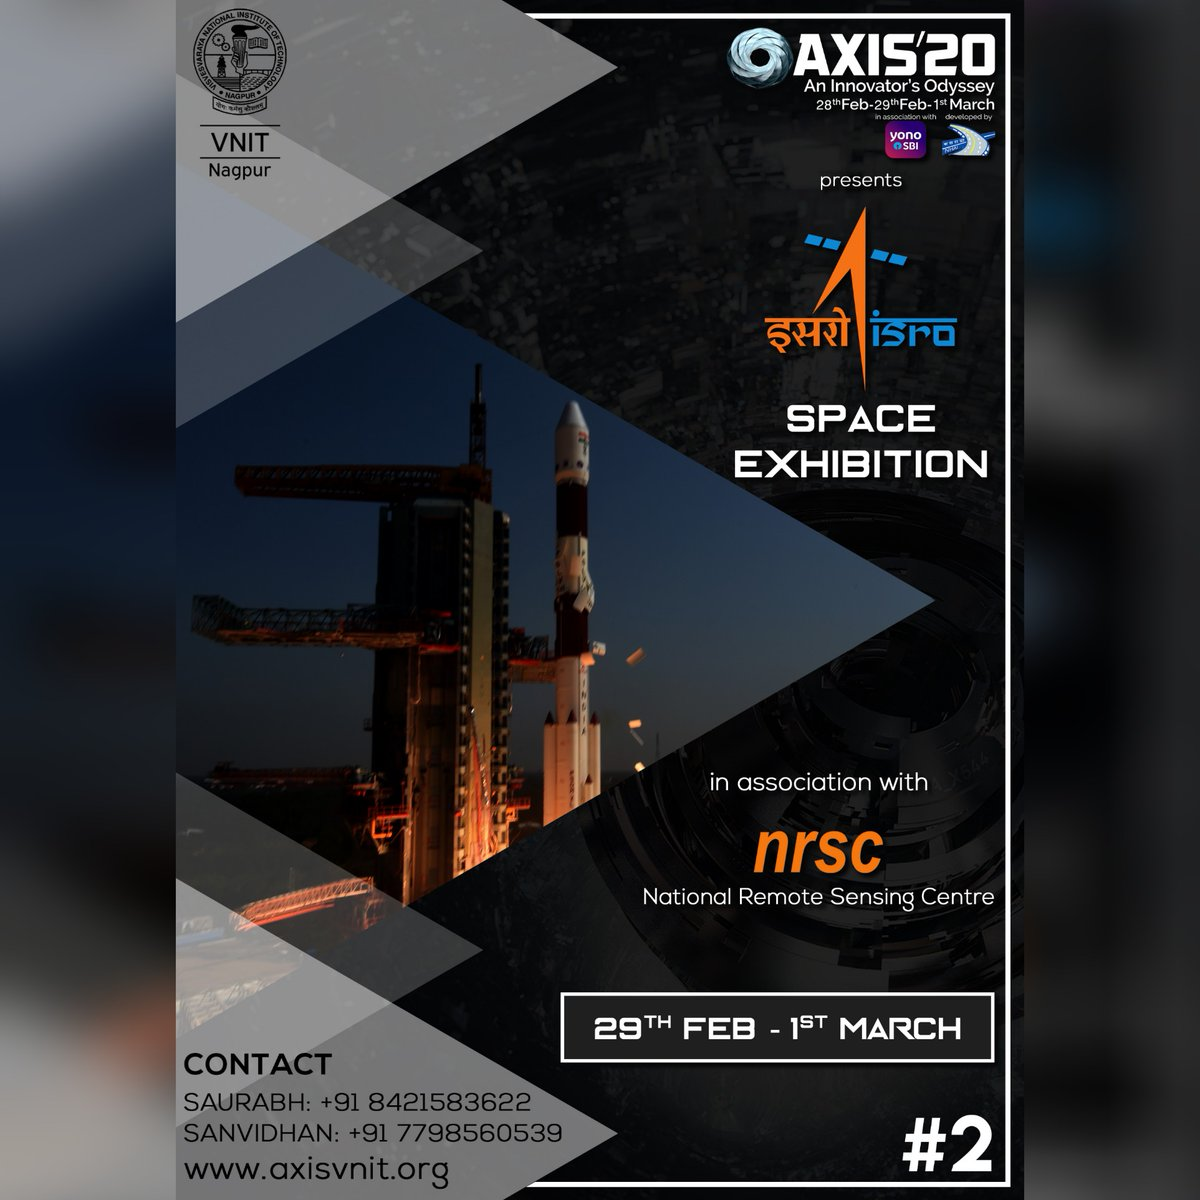 AXIS'20 is proud to host the ISRO Space Exhibition, presented by the National Remote Sensing Centre.   Come and witness this technical extravaganza at AXIS on *29th February and 1st March 2020*!  #isro #spaceresearch #exhibition #26_days_to_go #AnInnovatorsOdyssey  #AXIS20  #VNITpic.twitter.com/6Yk8W40SOC